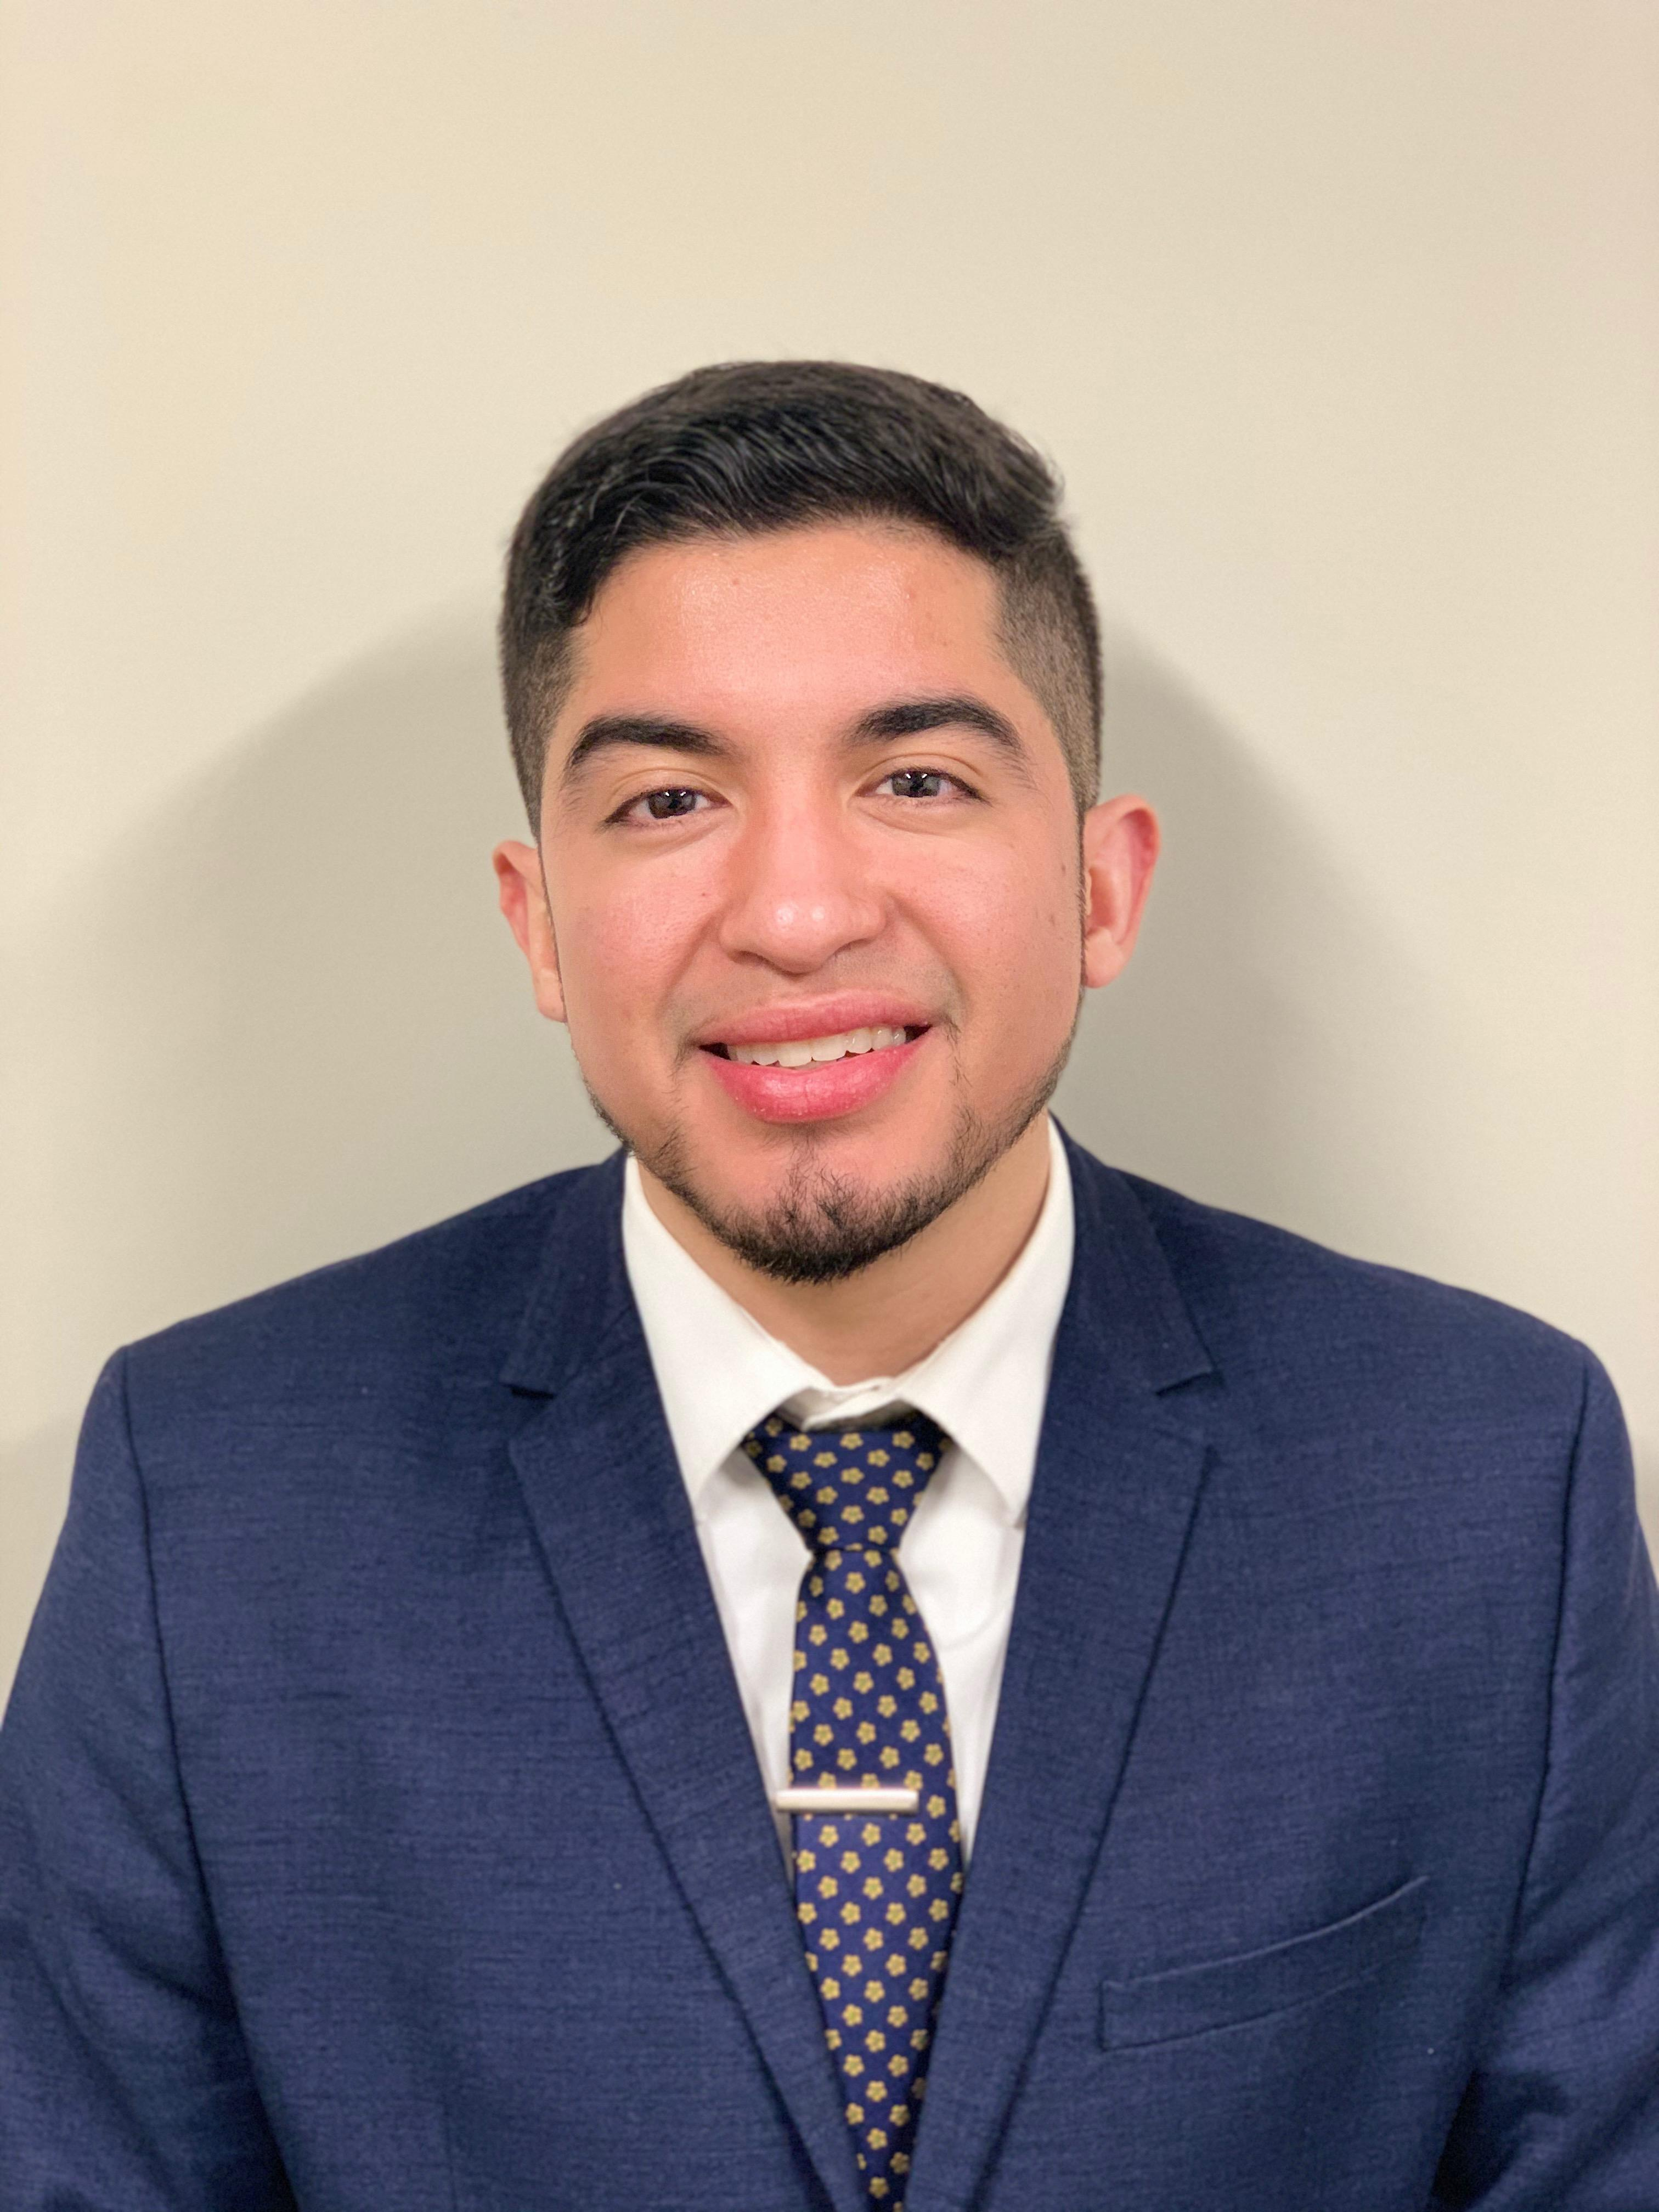 GEORGE RAMOS  Your Financial Professional & Insurance Agent